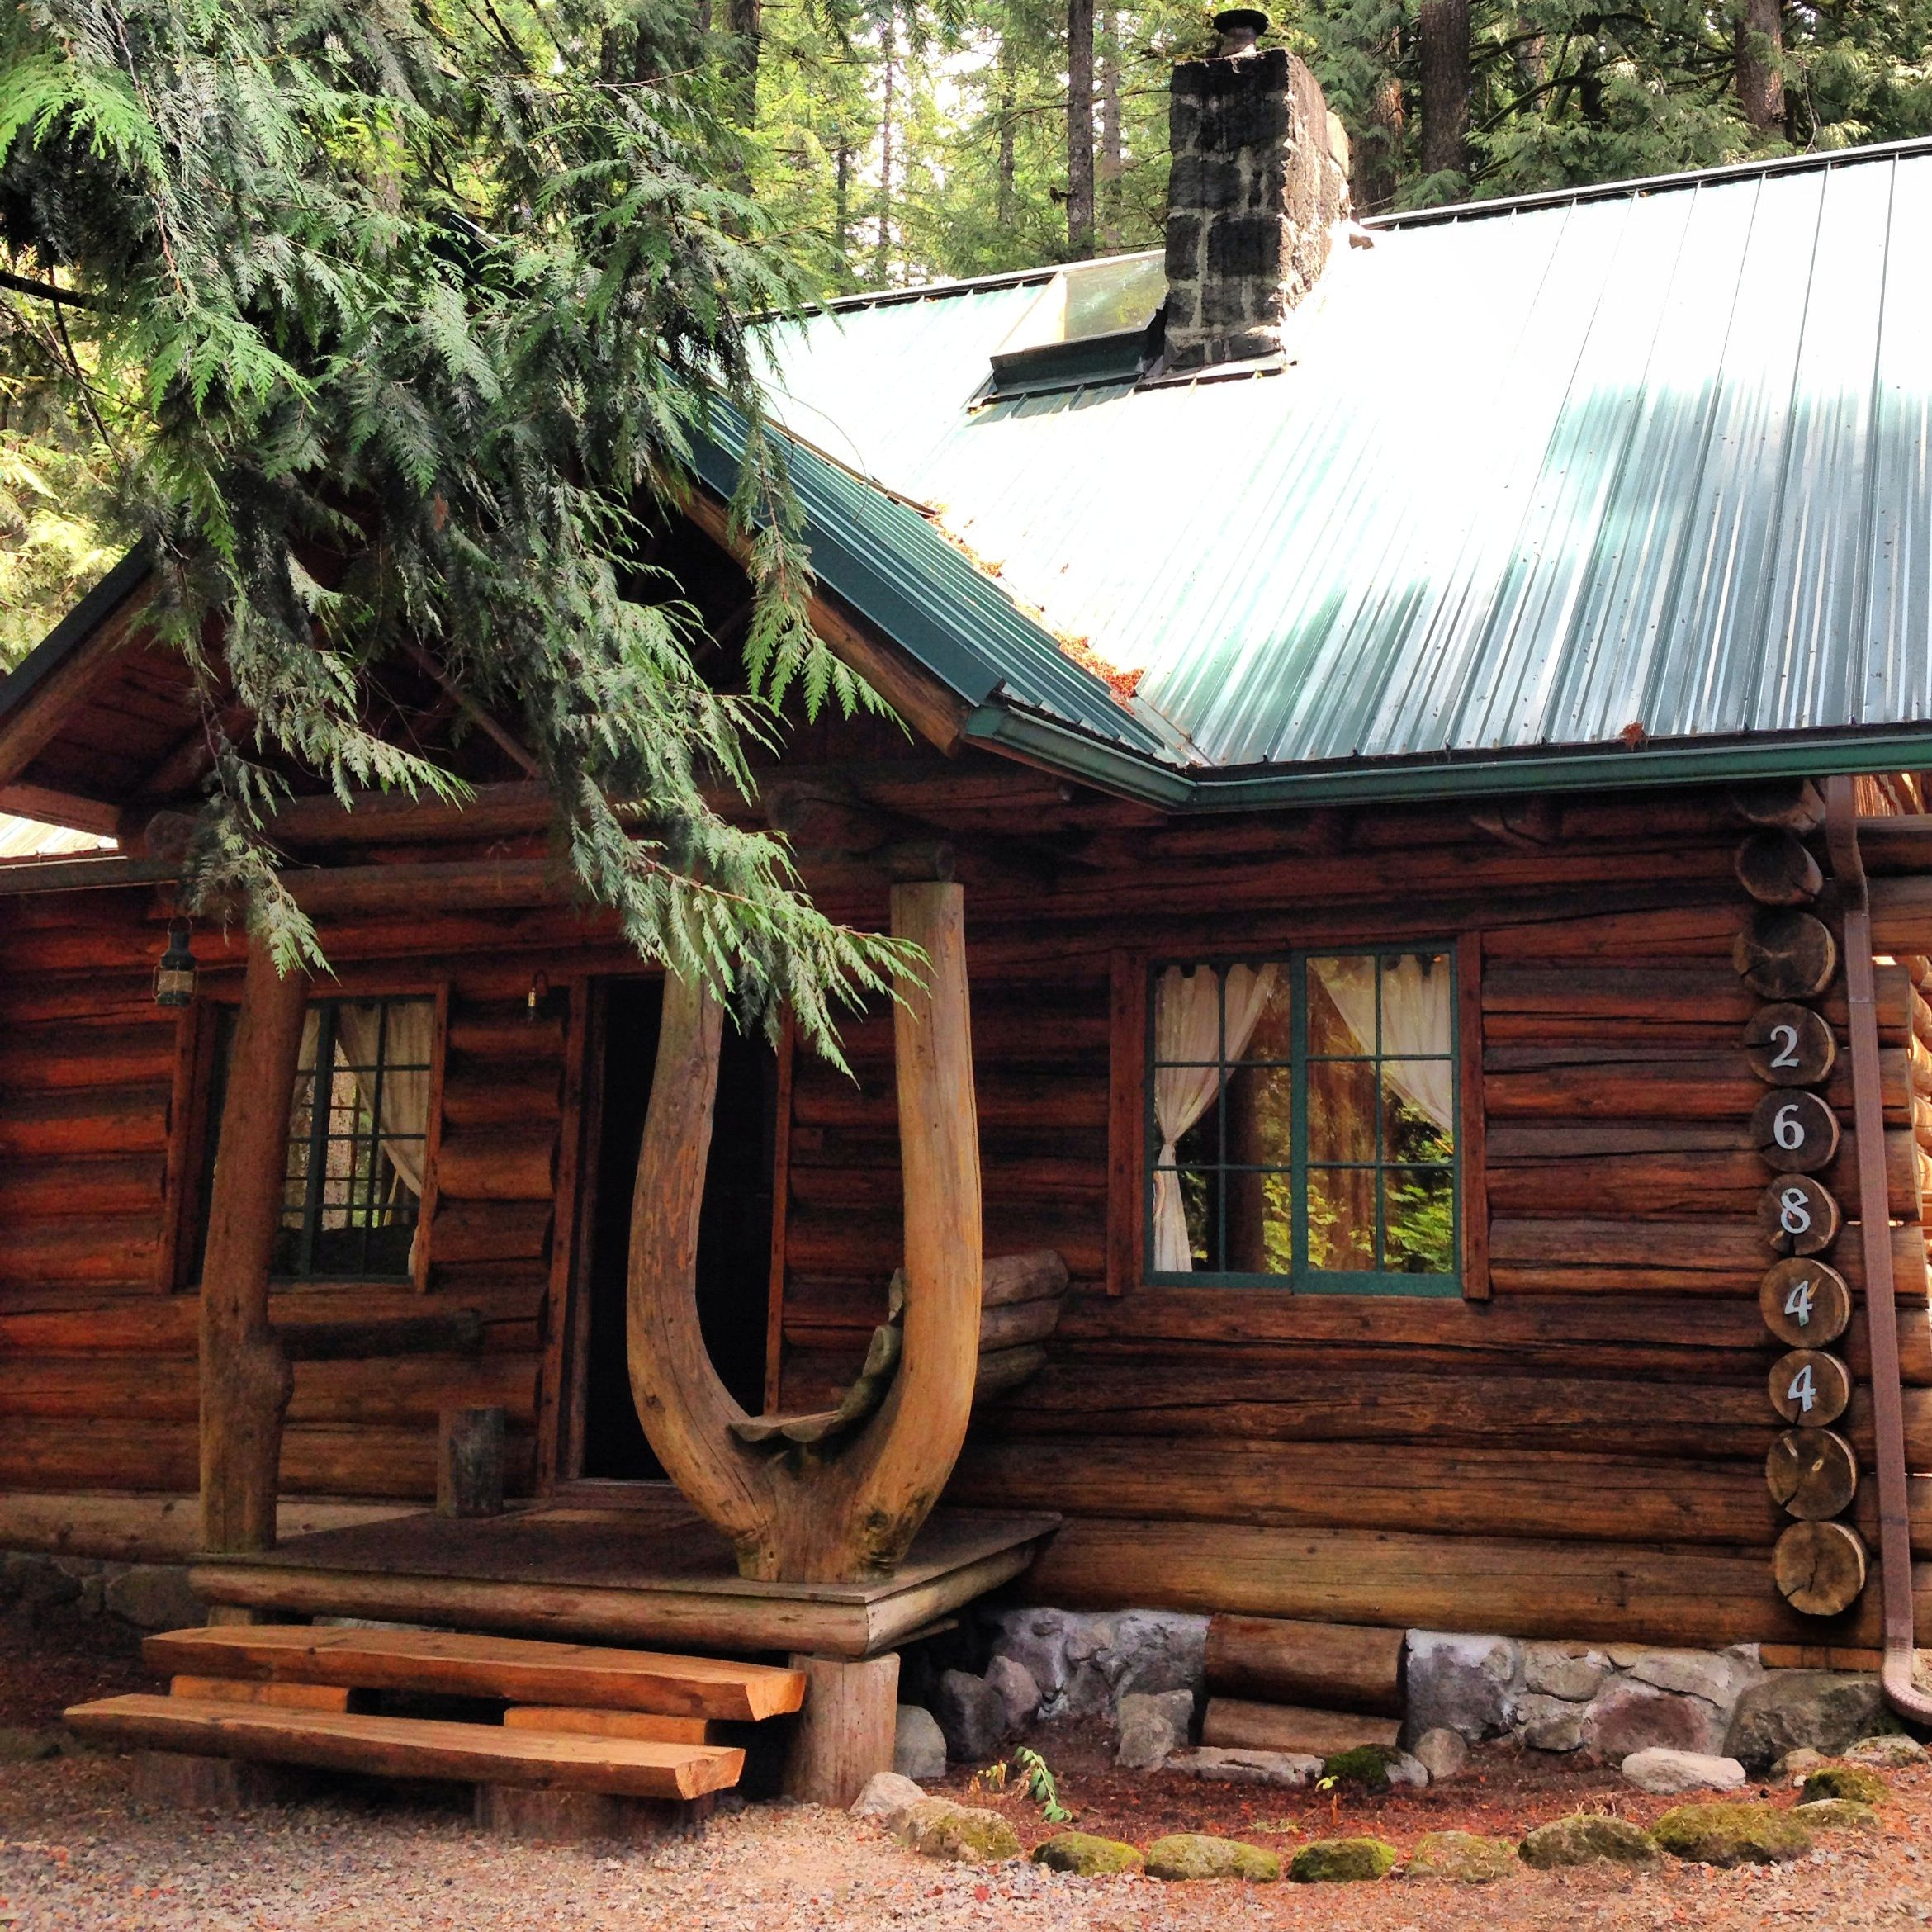 recreational types zumwalt cabins in meadow vacant oregon rent acres log land road w landleader for buckhorn cabin sale thomason ranches img property